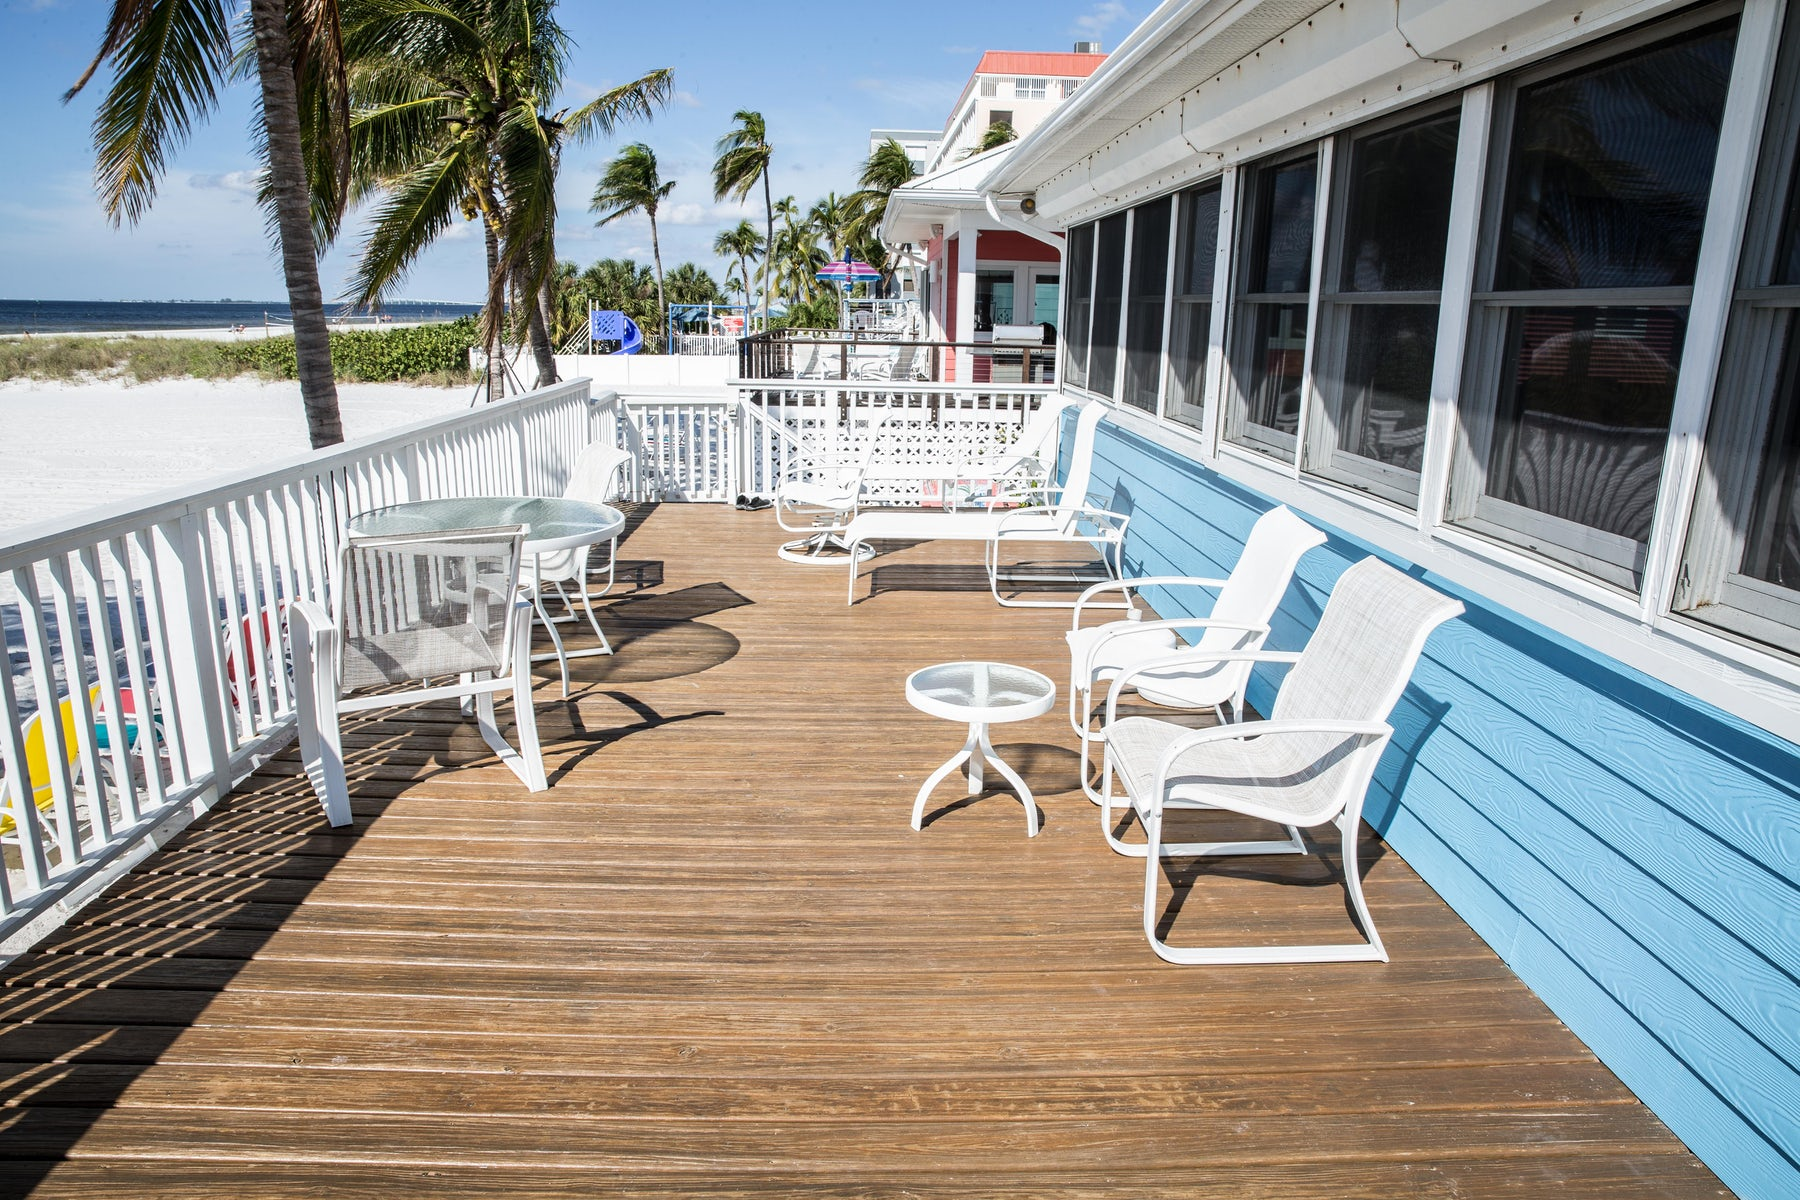 Rental Condo Deck in Fort Myers Beach""